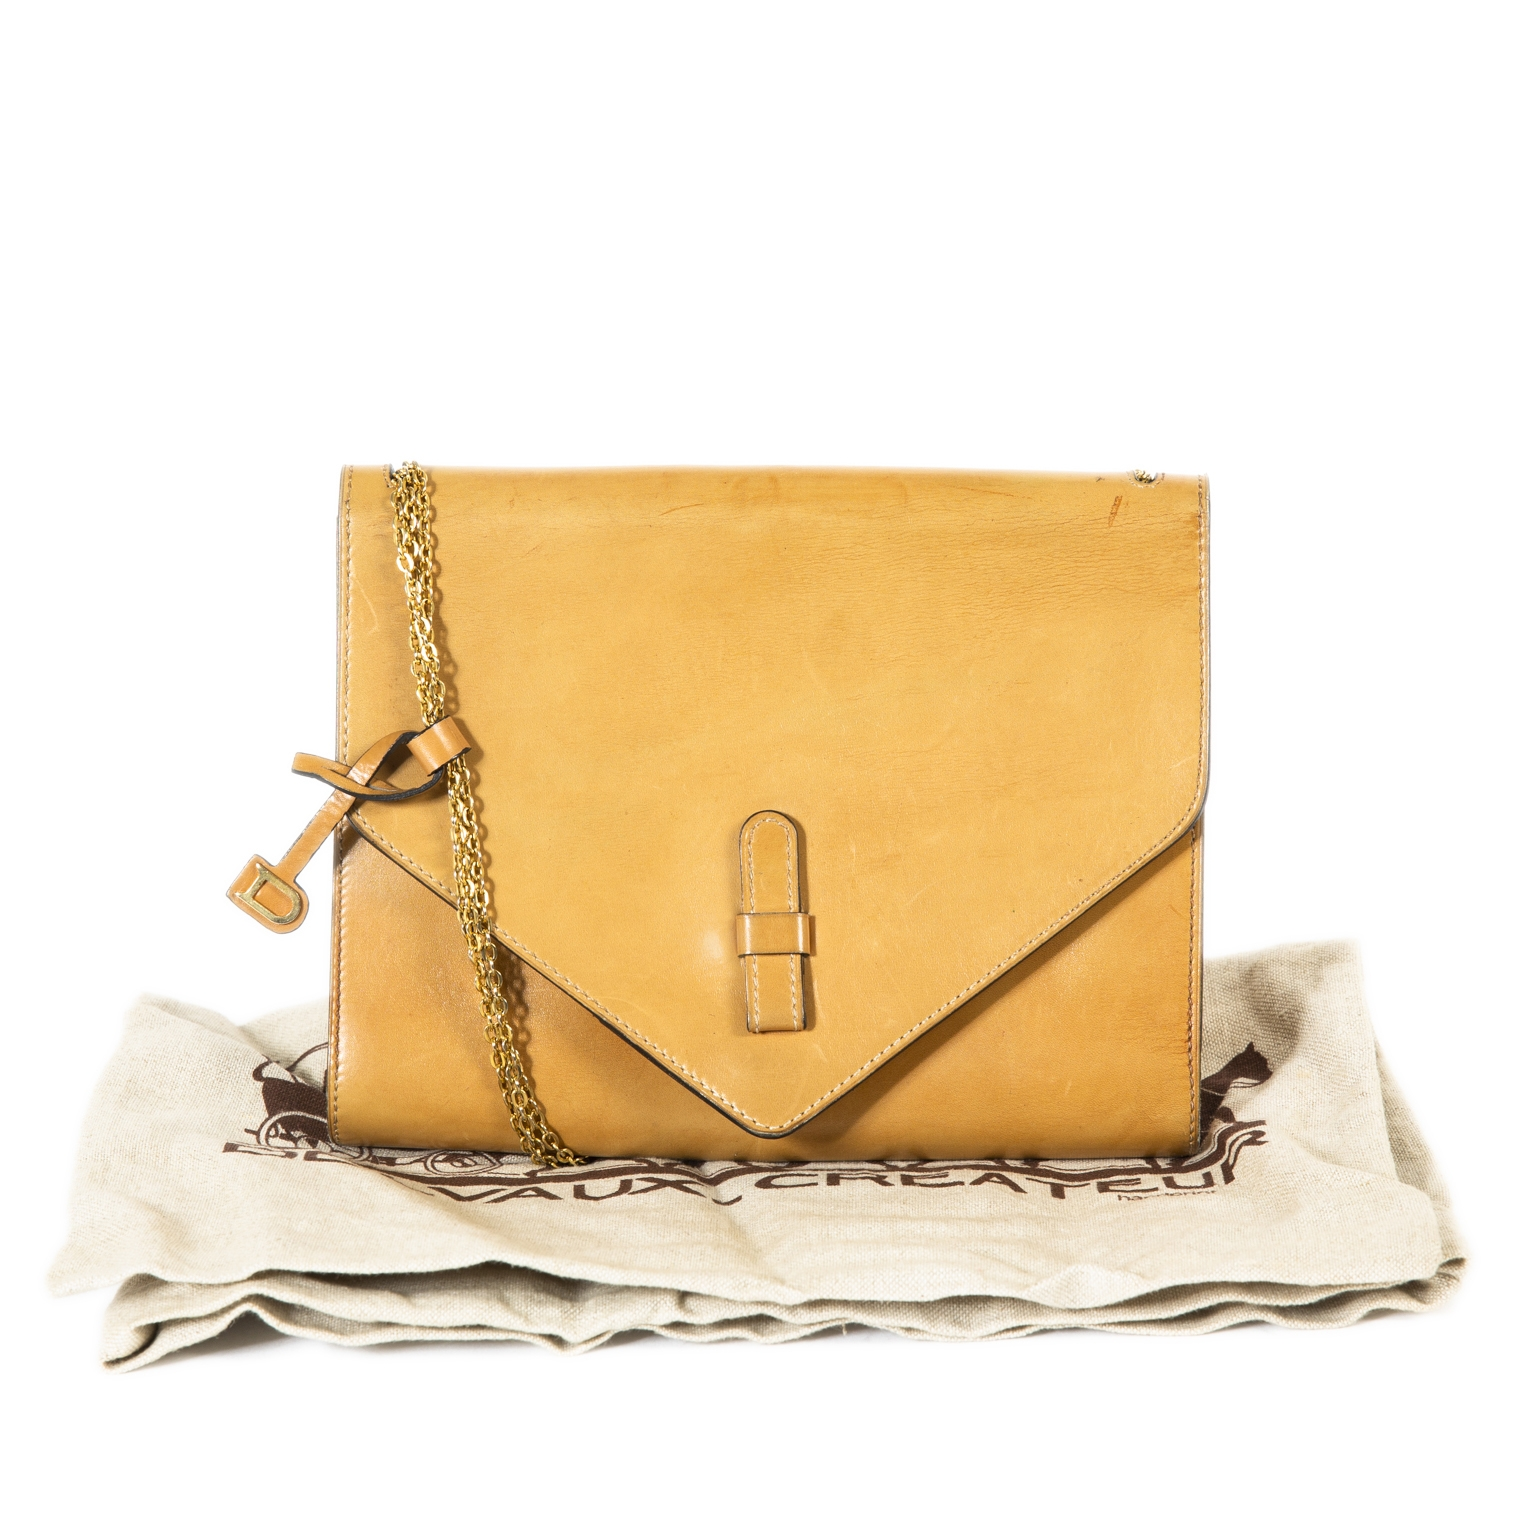 Delvaux Cognac Leather Chain Shoulder Bag now for sale at labellov vintage fashion webshop belgium